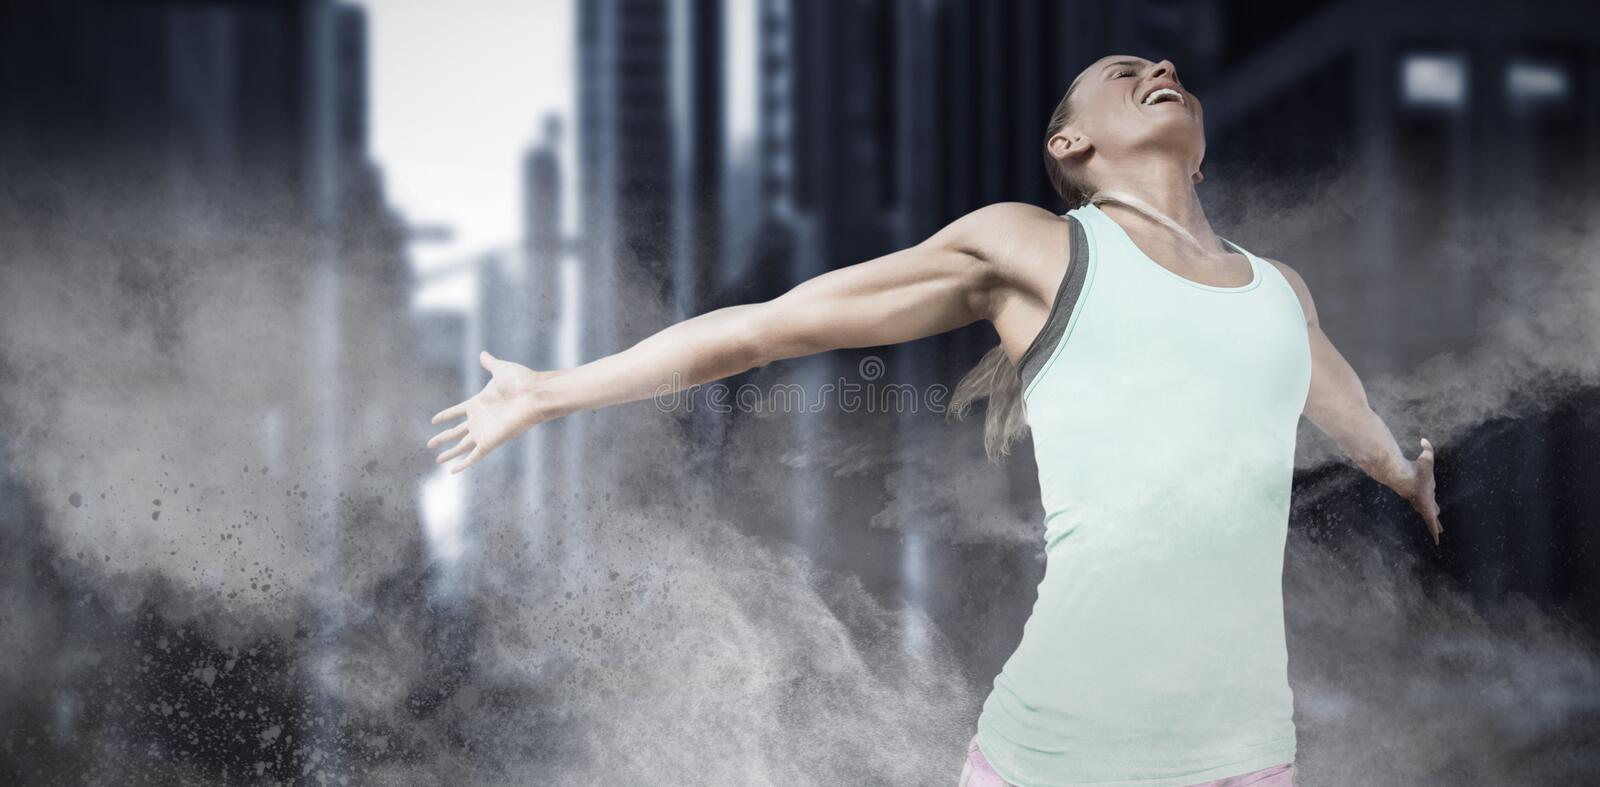 Composite image of sportswoman celebrating her victory royalty free stock photos